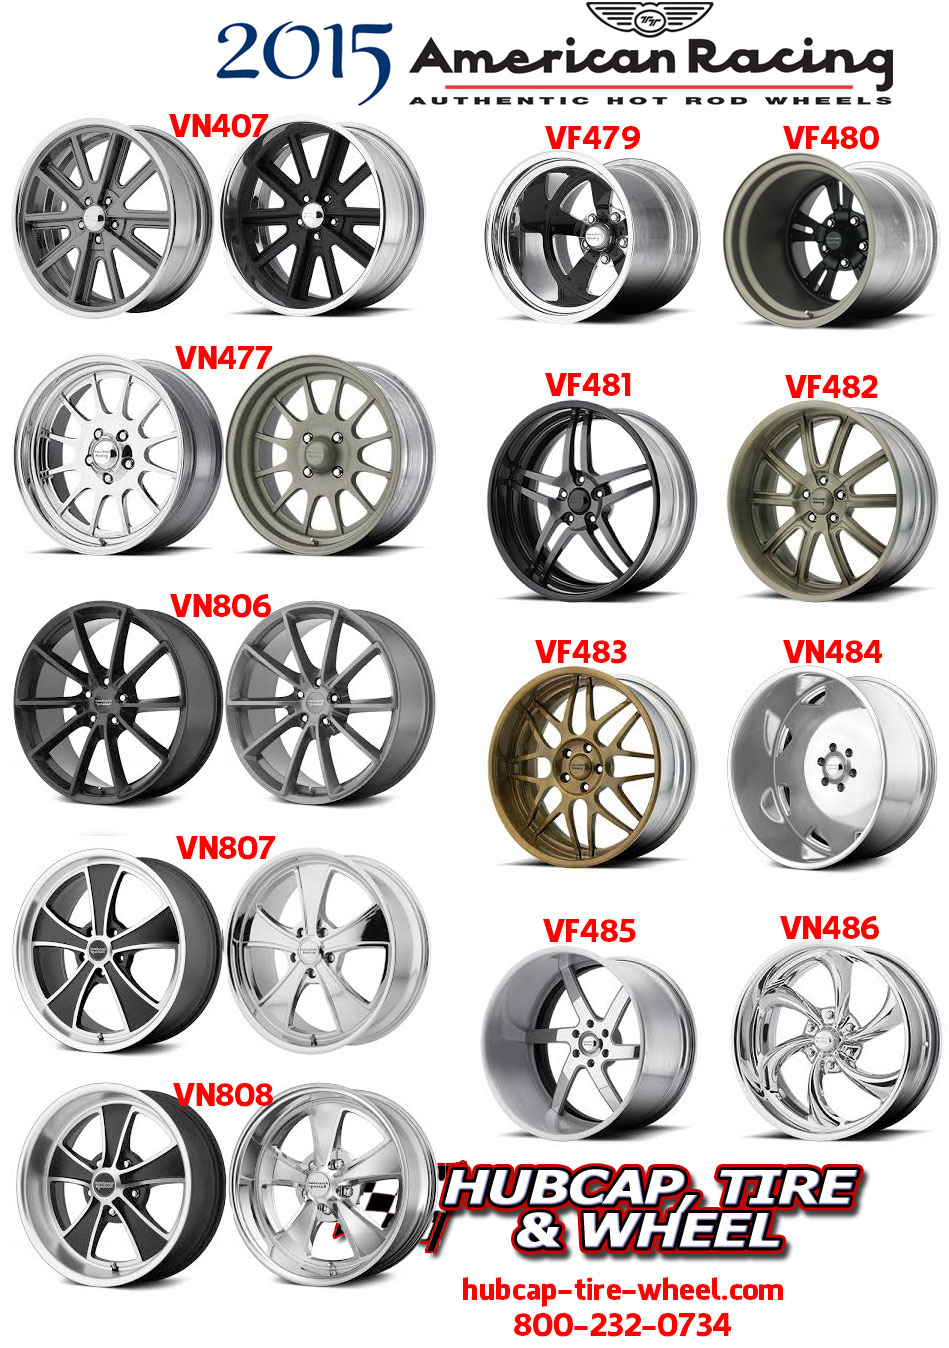 New 2015 American Racing Classic Hot Rod Vintage Wheels